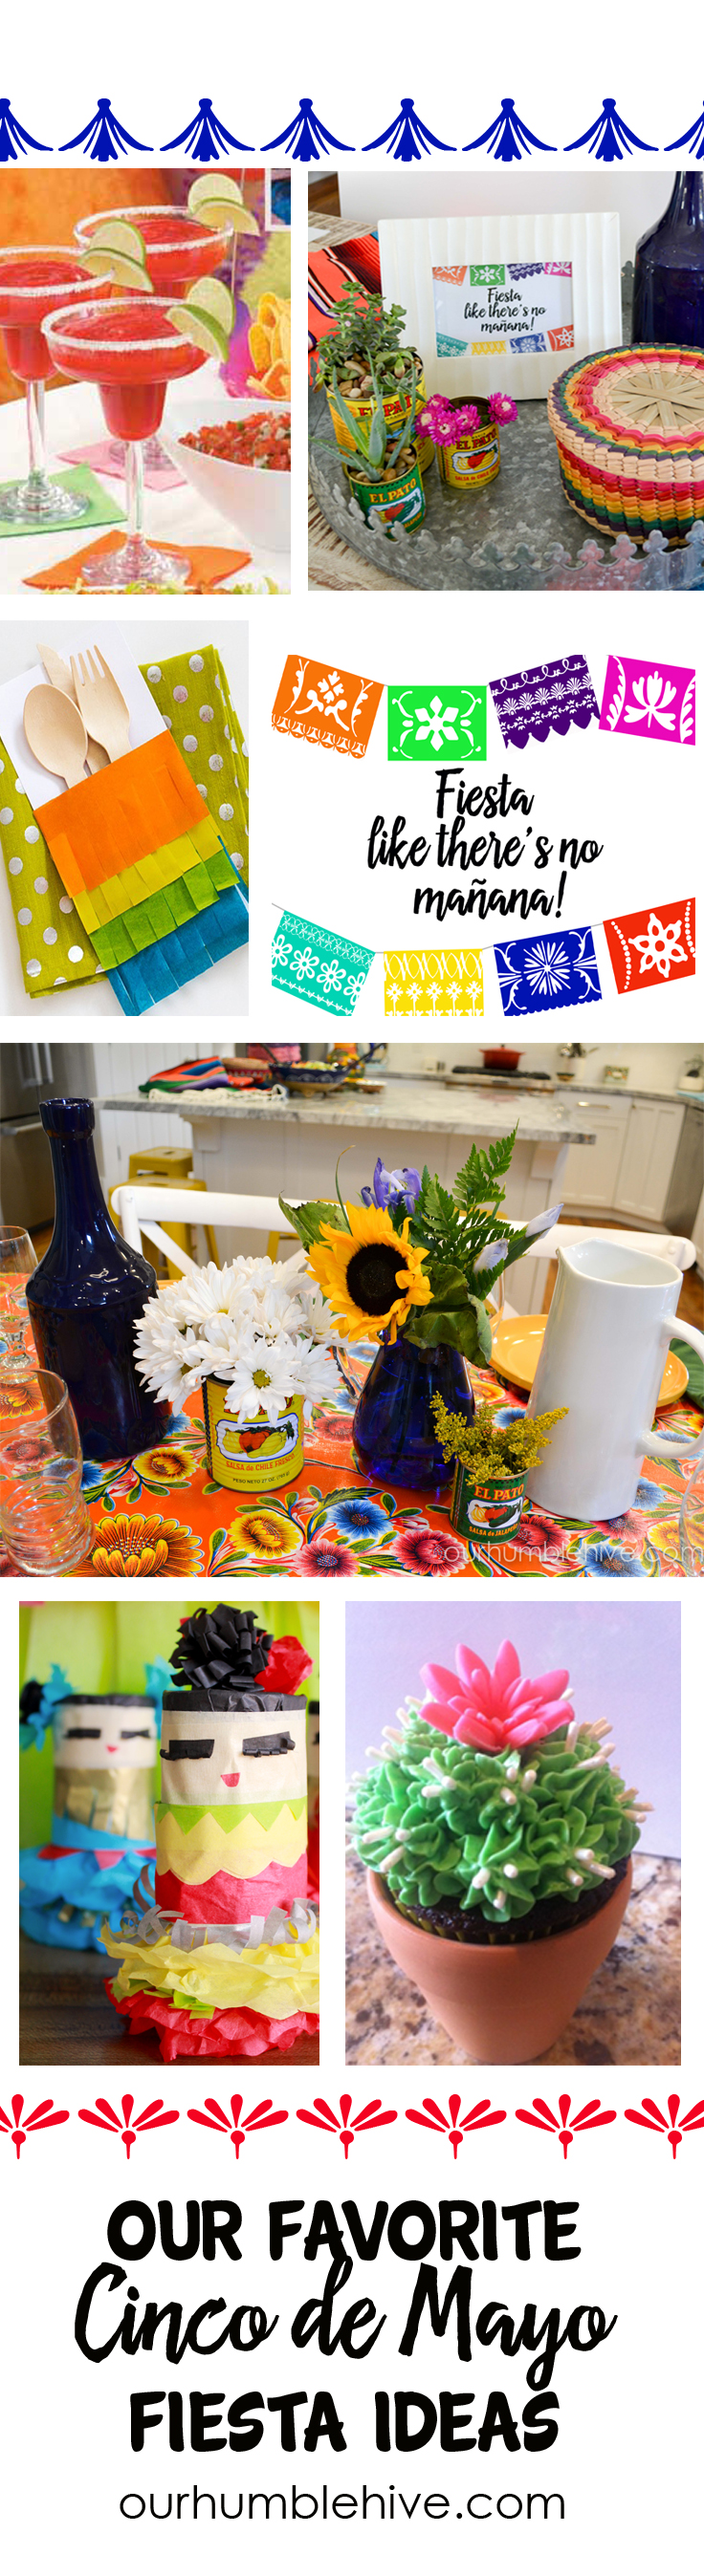 Top Left to Right: Mock Strawberry Margaritas ,  DIY Utensil Holder ,  Free Printable from Our Humble Hive ,  Mini Piñata ,  Cactus Cupcake